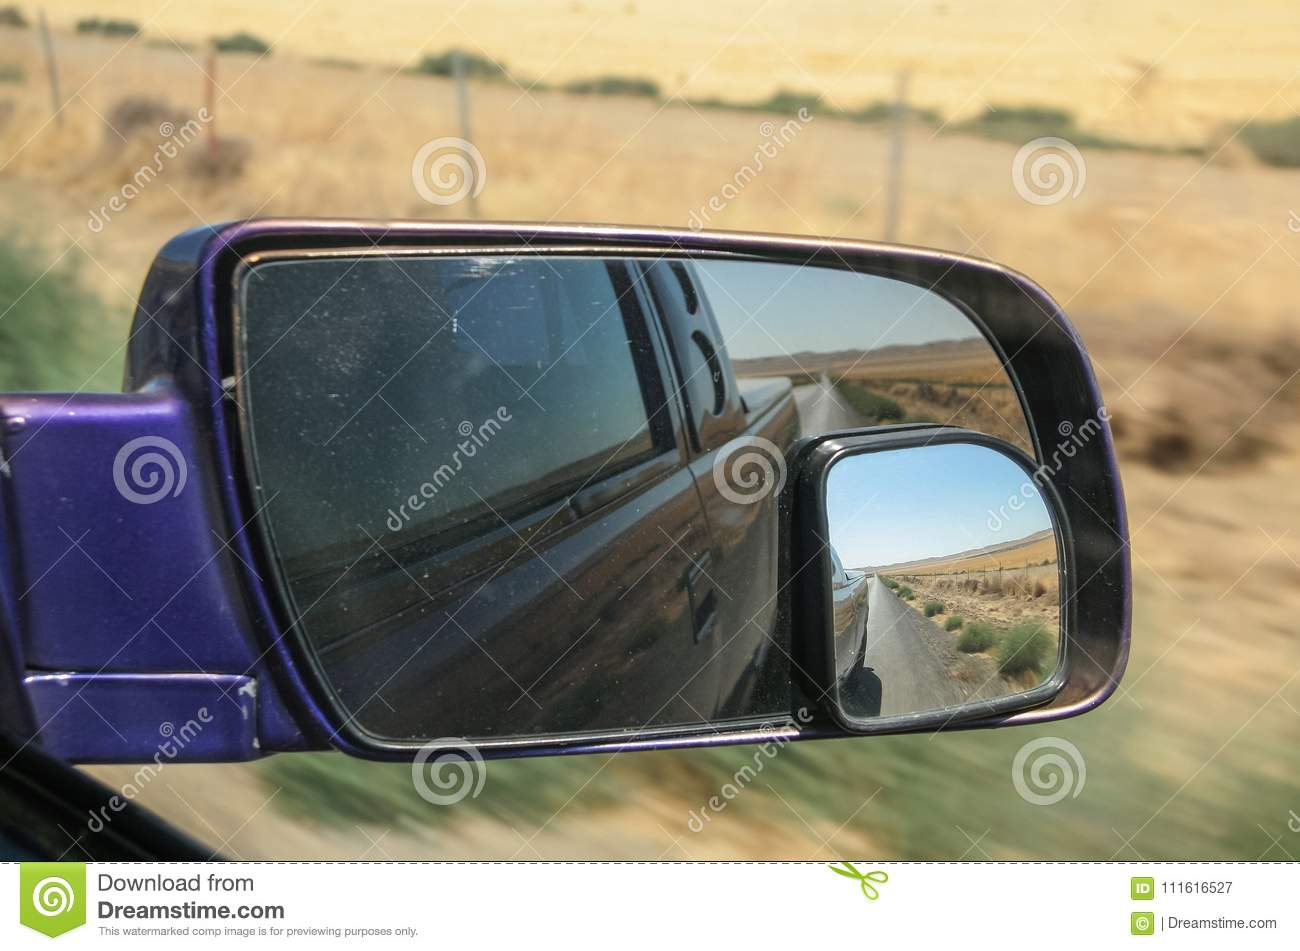 Rural scene in California, USA reflected in the rear view mirror